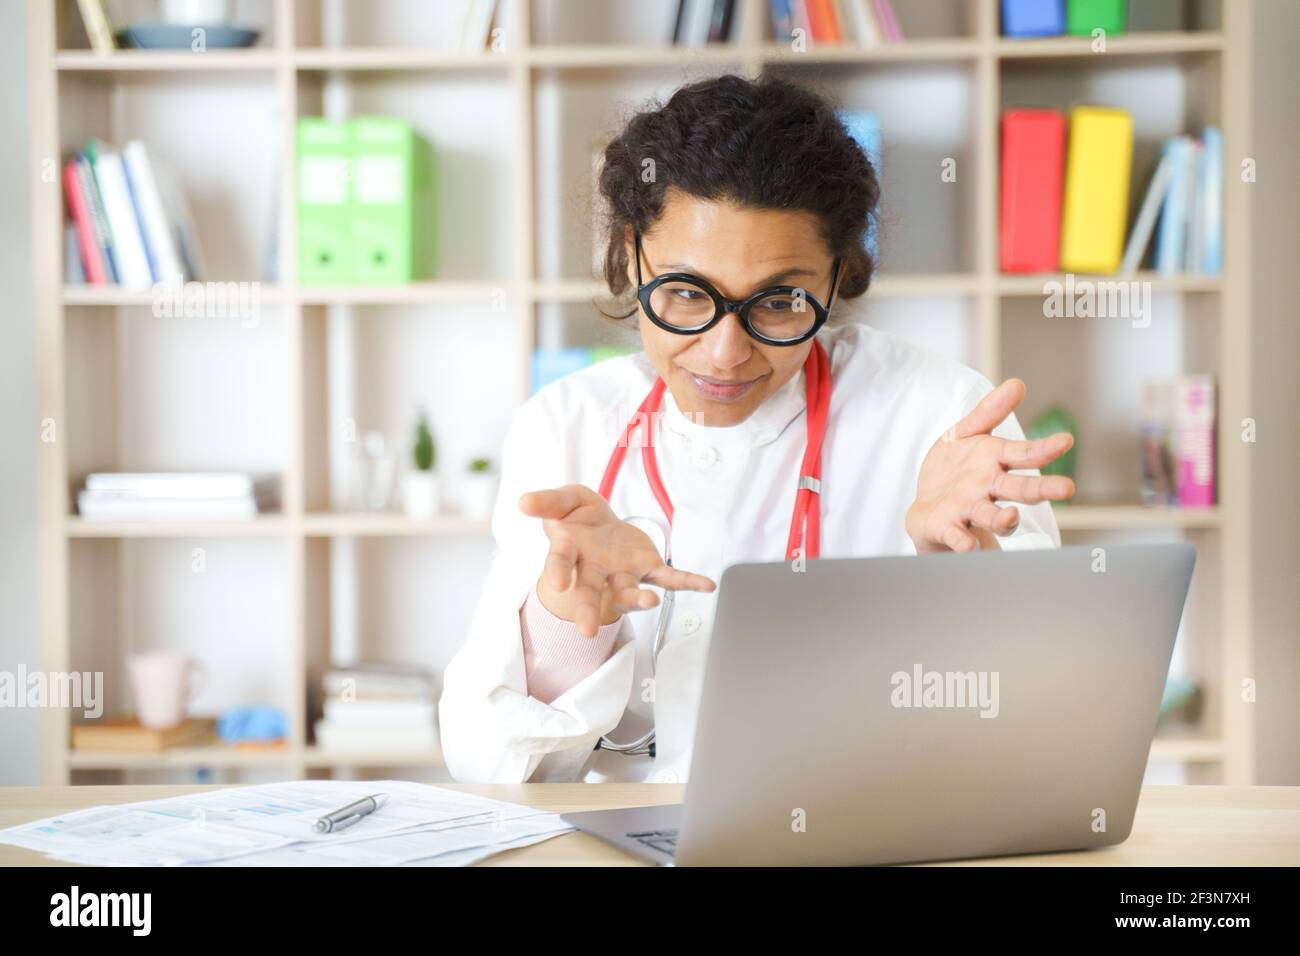 Doctor helping patient via telehealth making video call Stock Photo